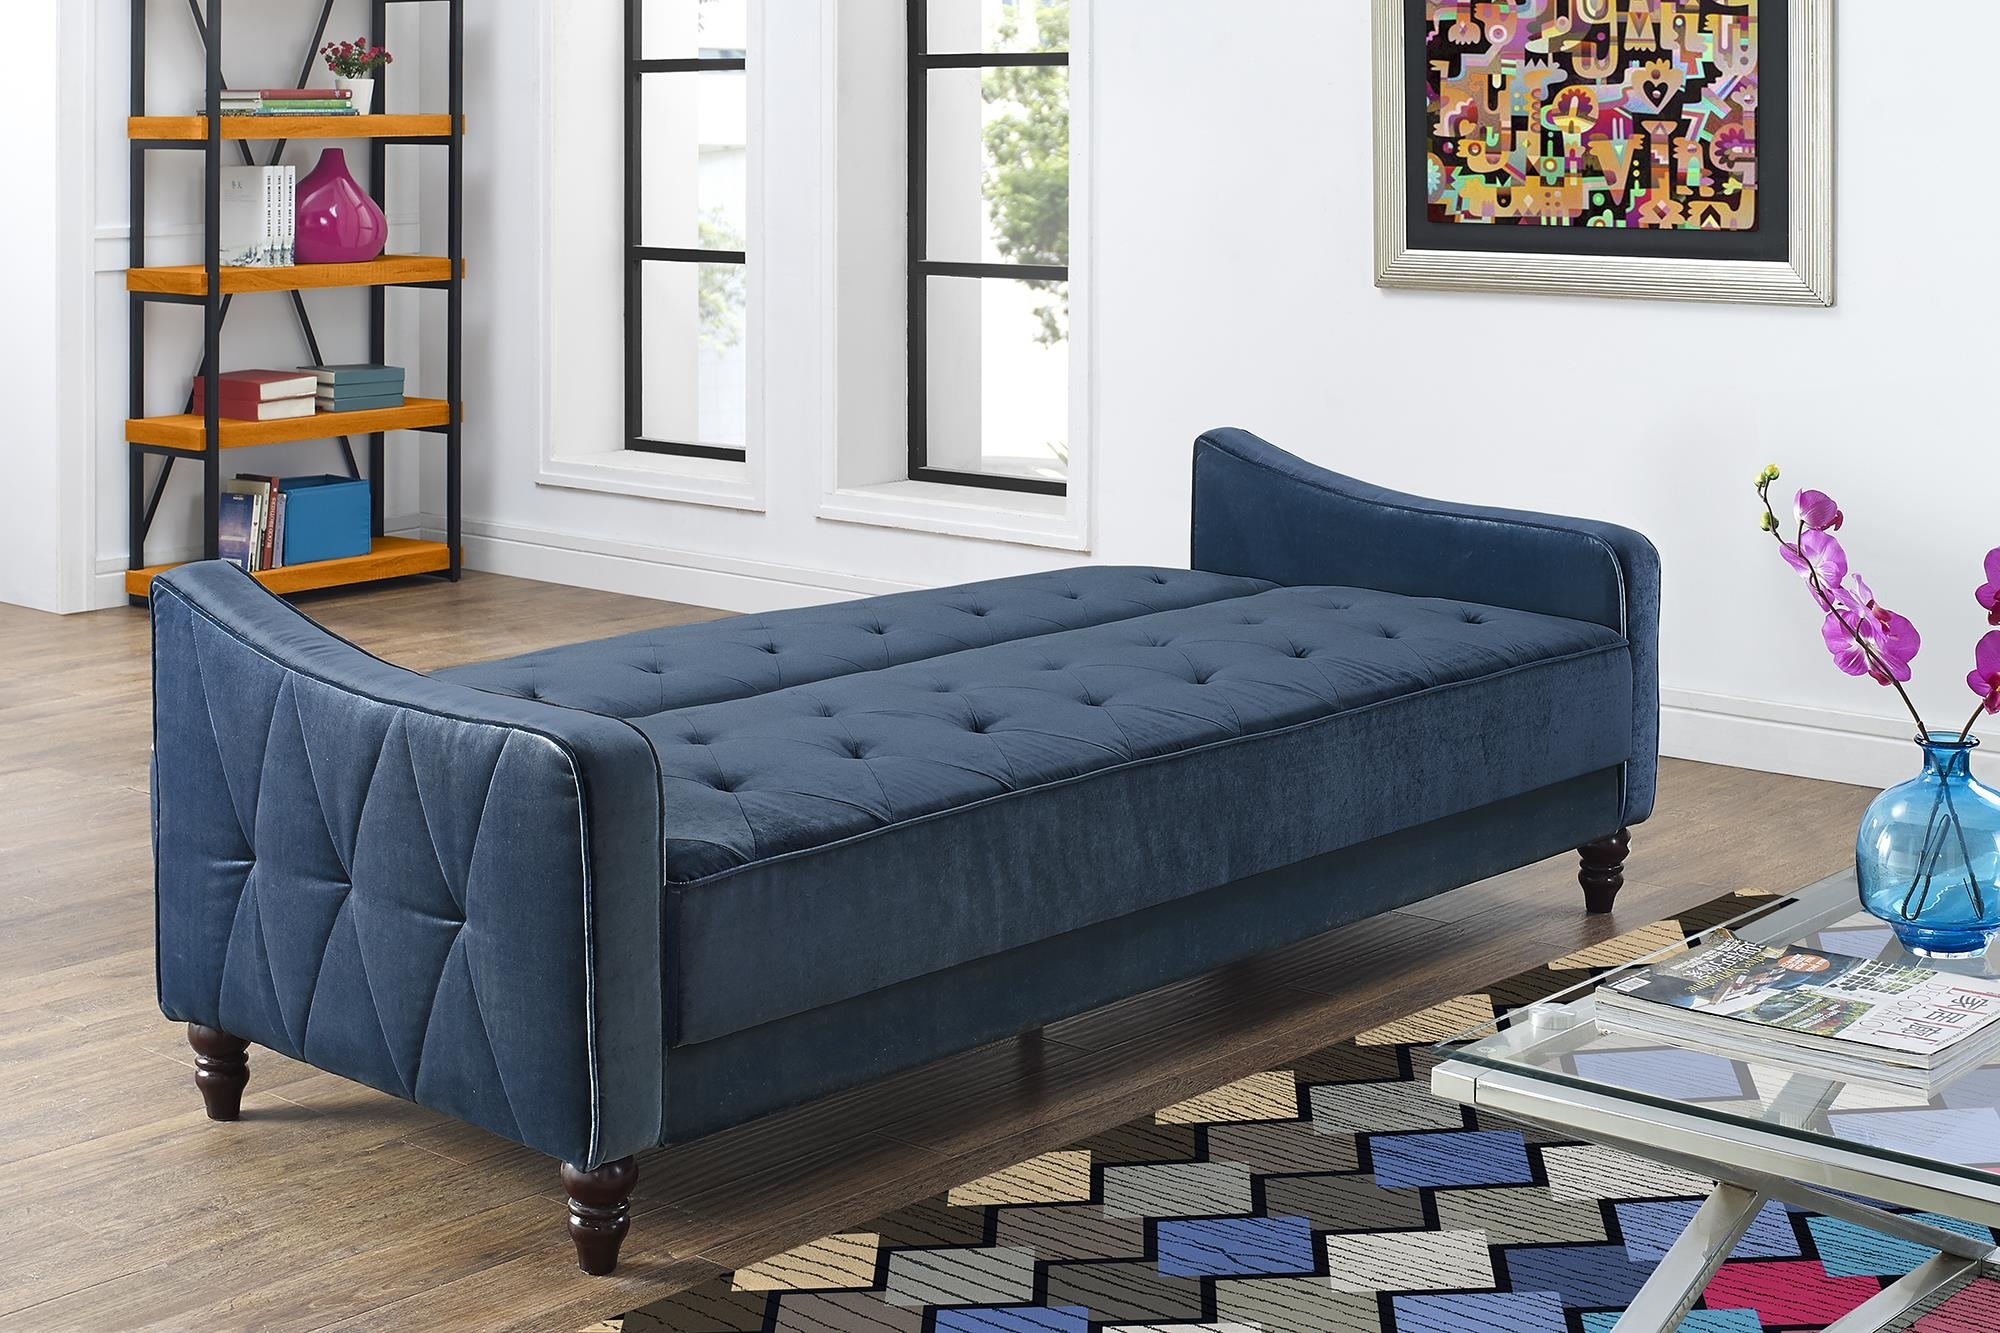 Furniture Amusing Walmart Sofas For Home Ideas Press Blue Tufted Intended For Sectional Sofas At Walmart (View 4 of 15)